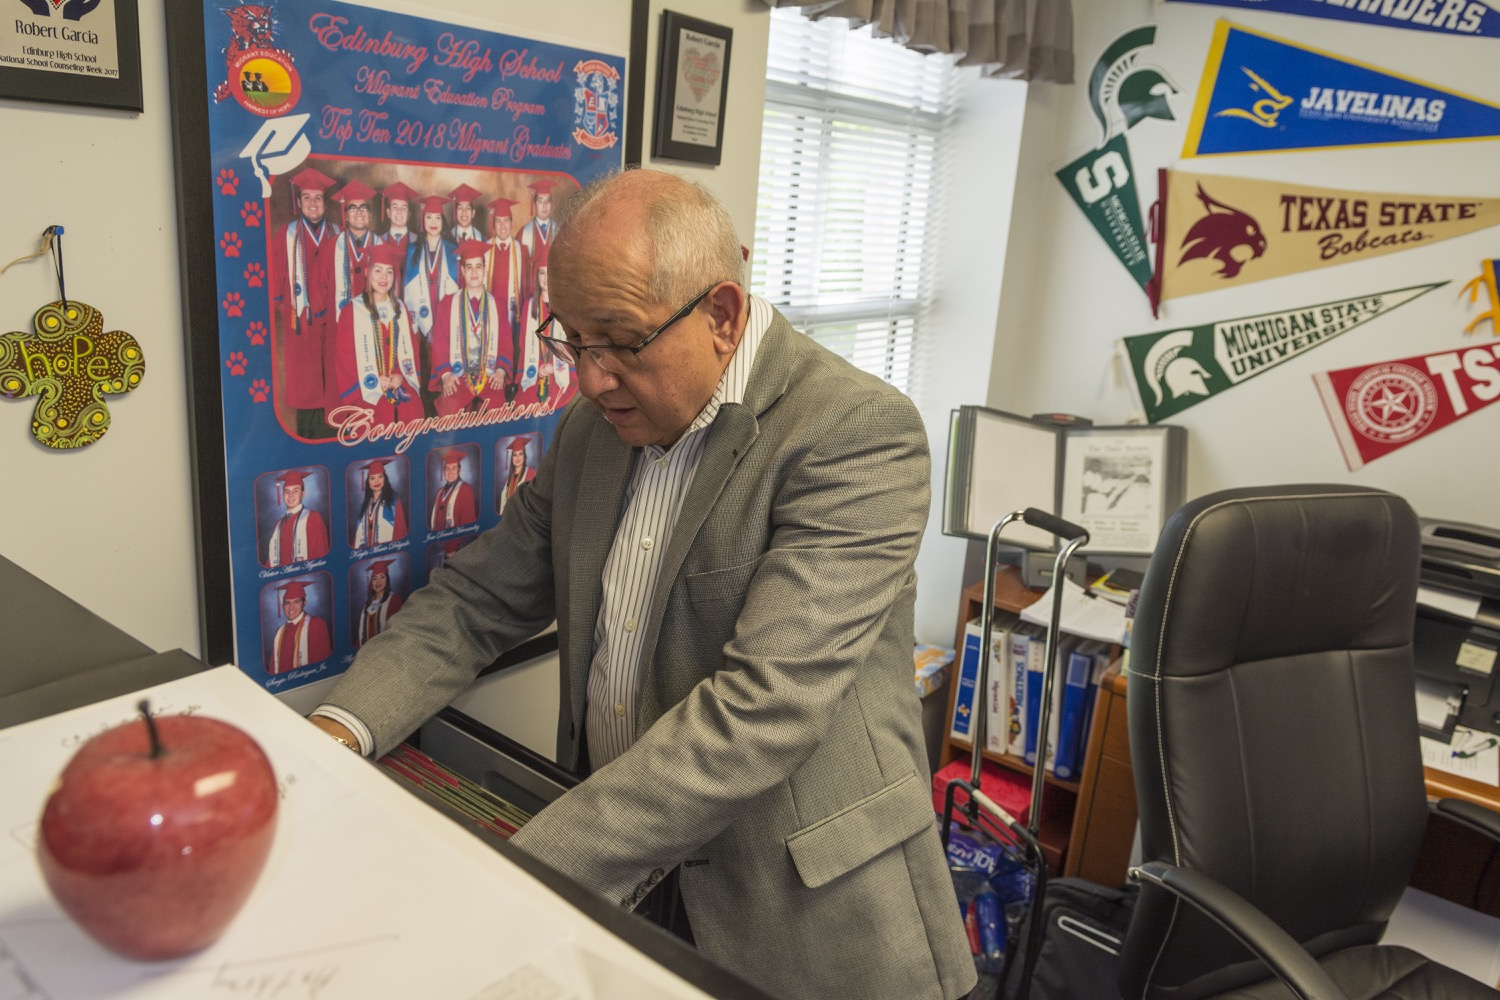 Roberto V. García, migrant student counselor, looks up records in his office in Edinburg High School.©2018/Jerry Redfern